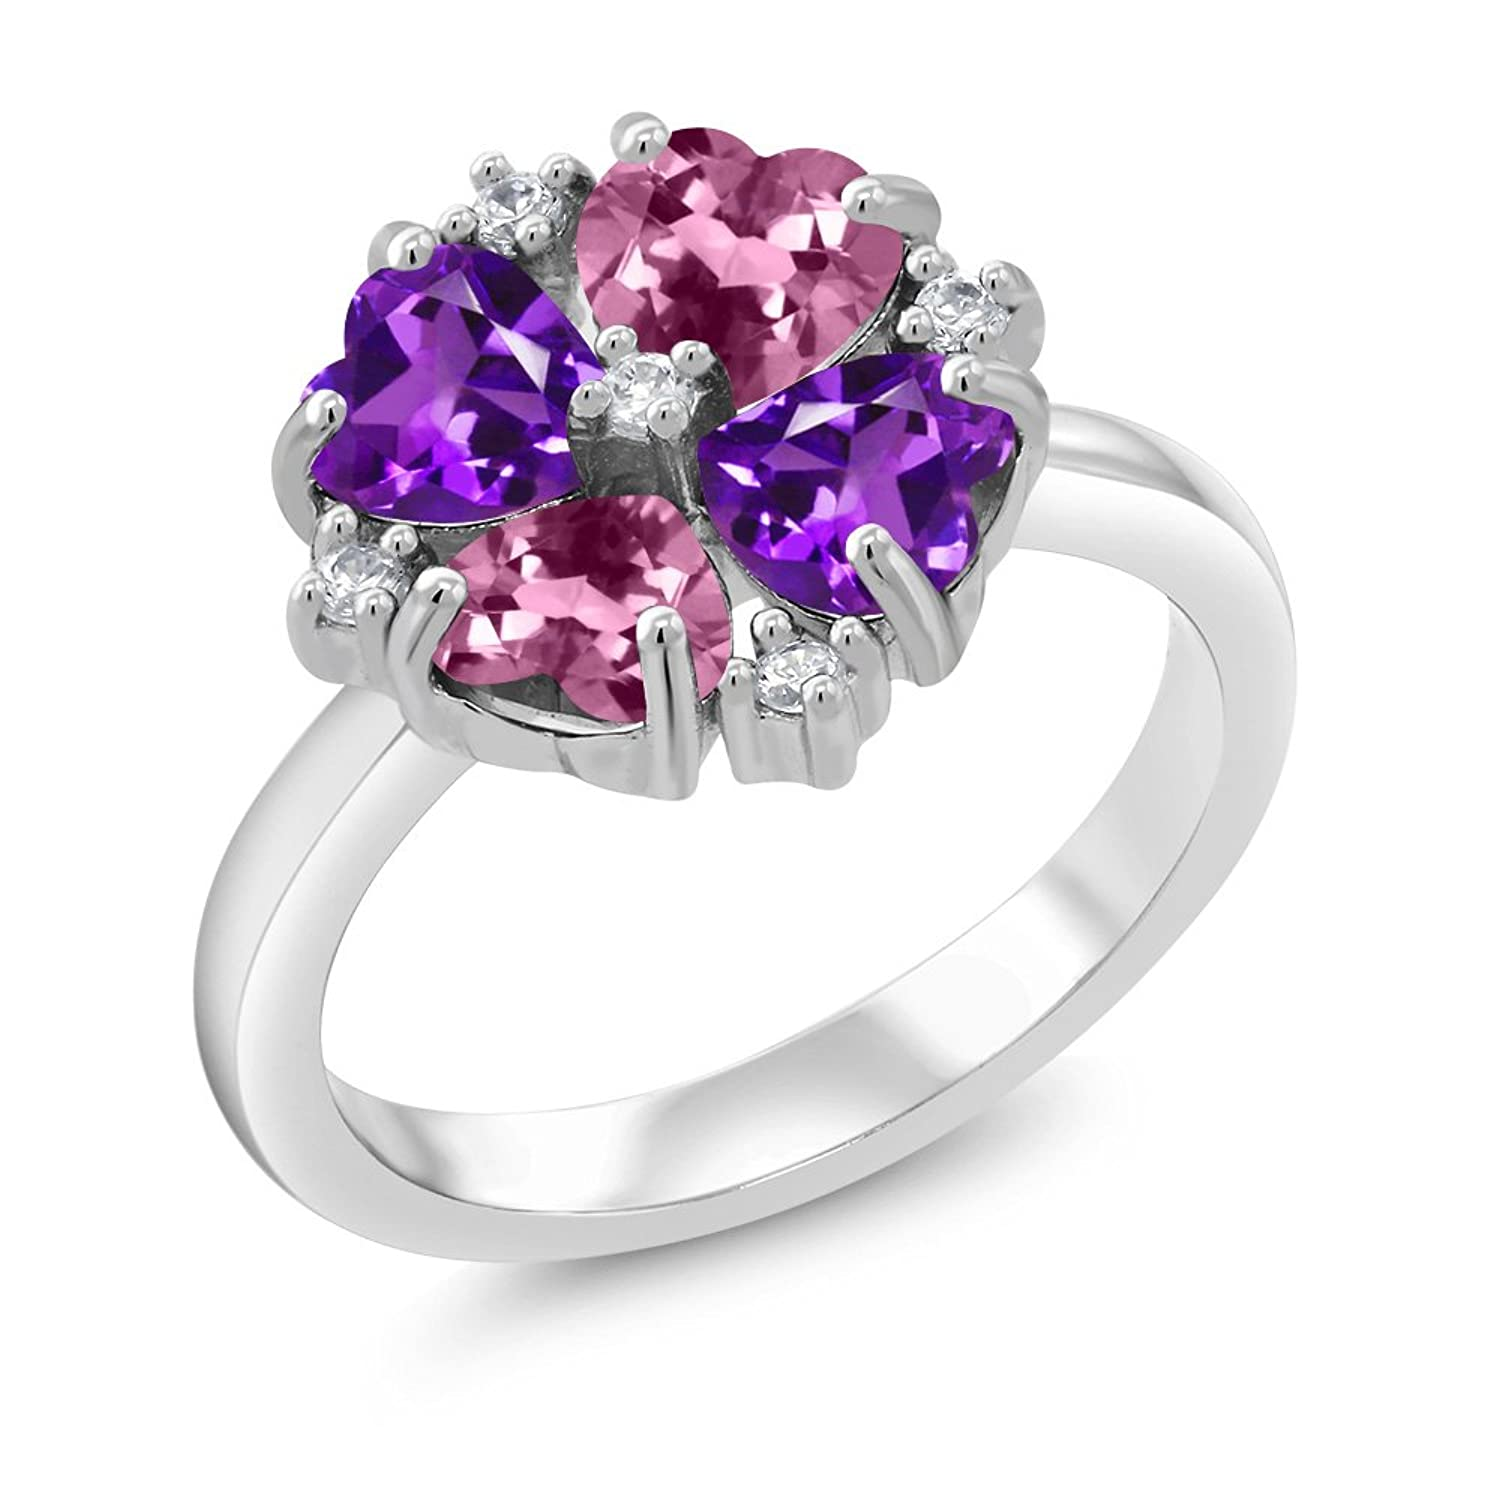 1.76 Ct Heart Shape Pink Tourmaline Purple Amethyst 925 Sterling Silver Ring - Sizes 5 -9